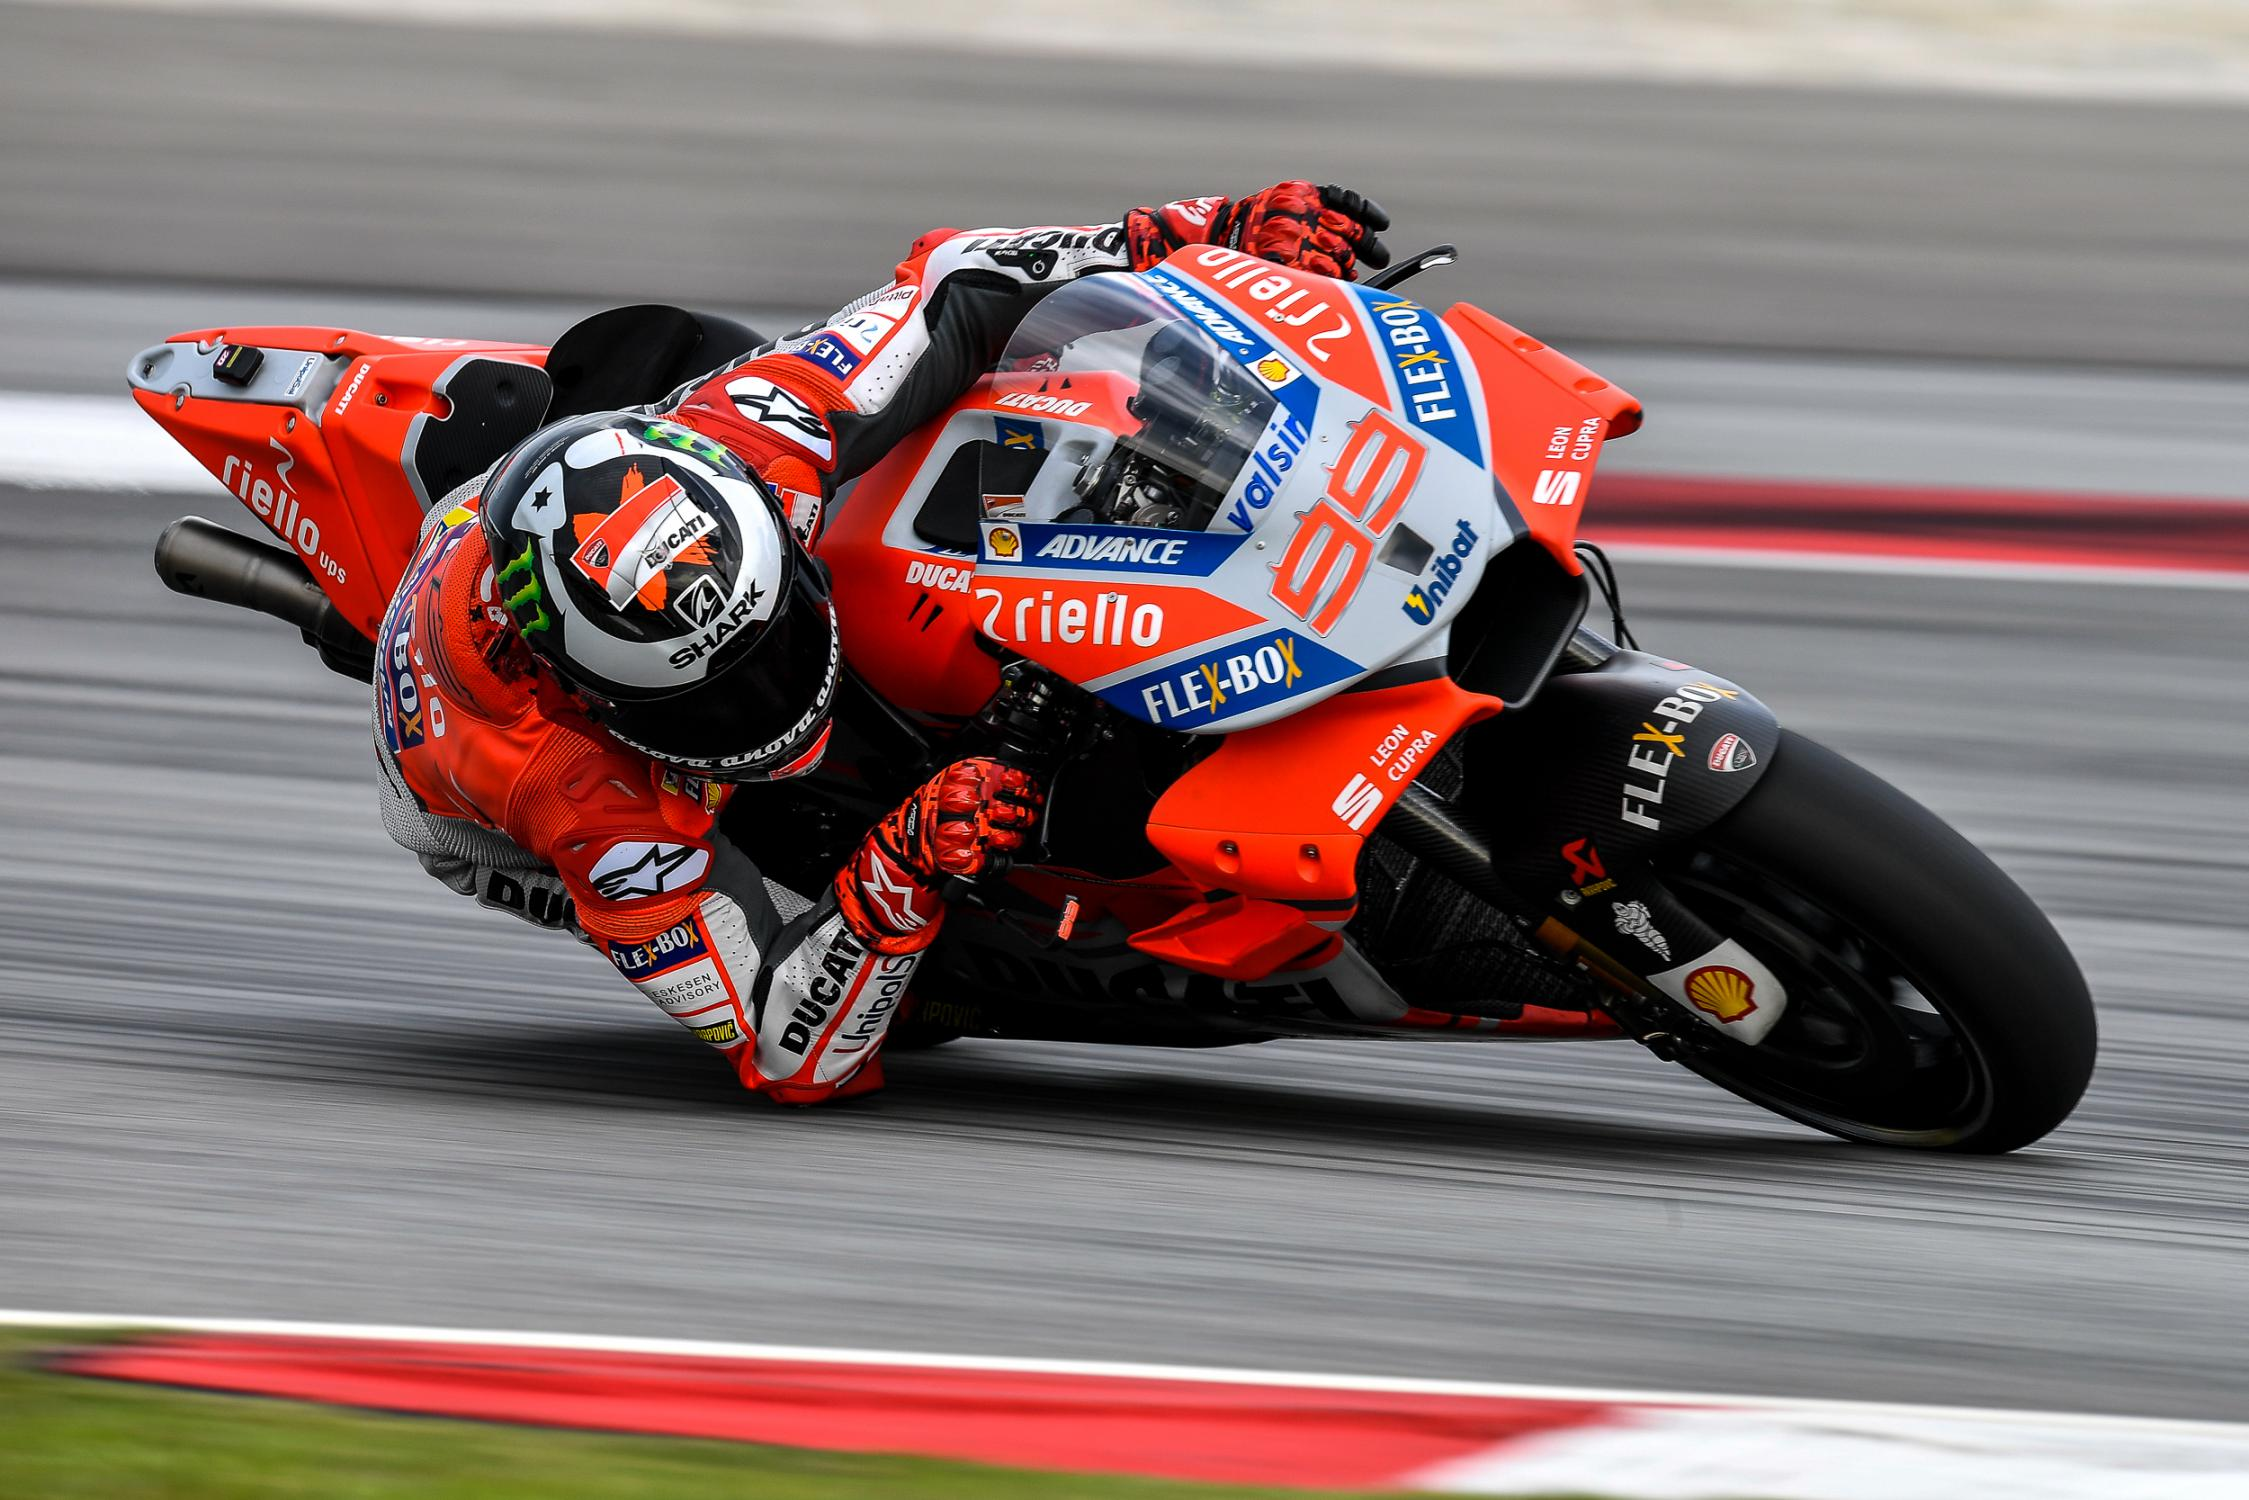 2018 Sepang Official Motogp Test Day Three Lorenzo Smashes Lap Record Before Midday Break